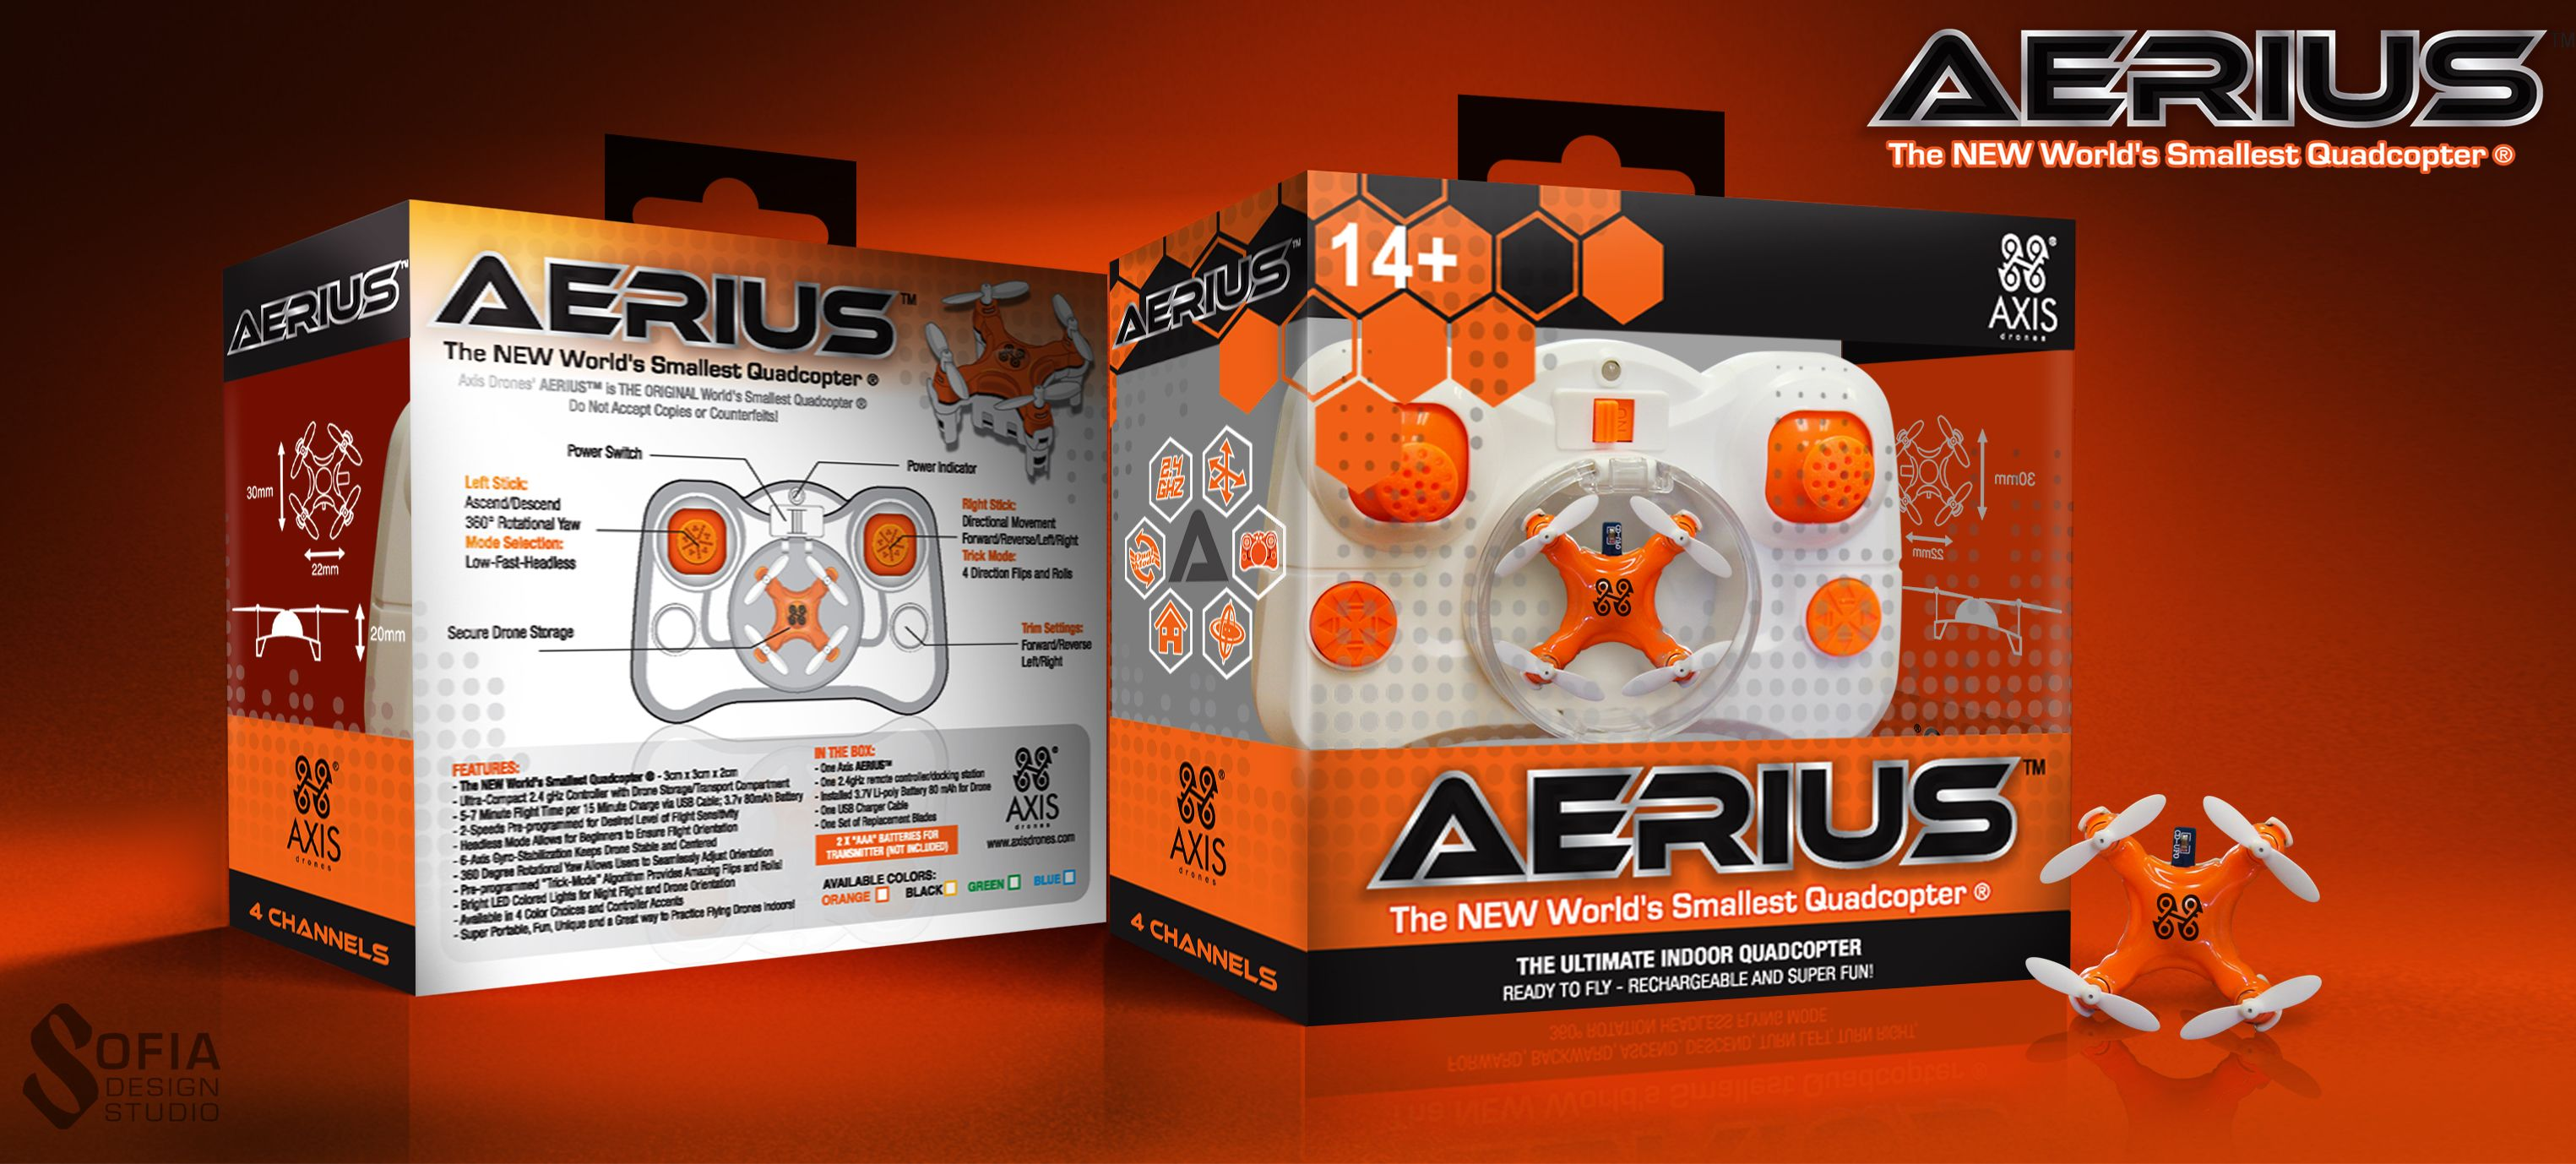 Axis AERIUS Drone | Small drones, Drone, Quadcopter